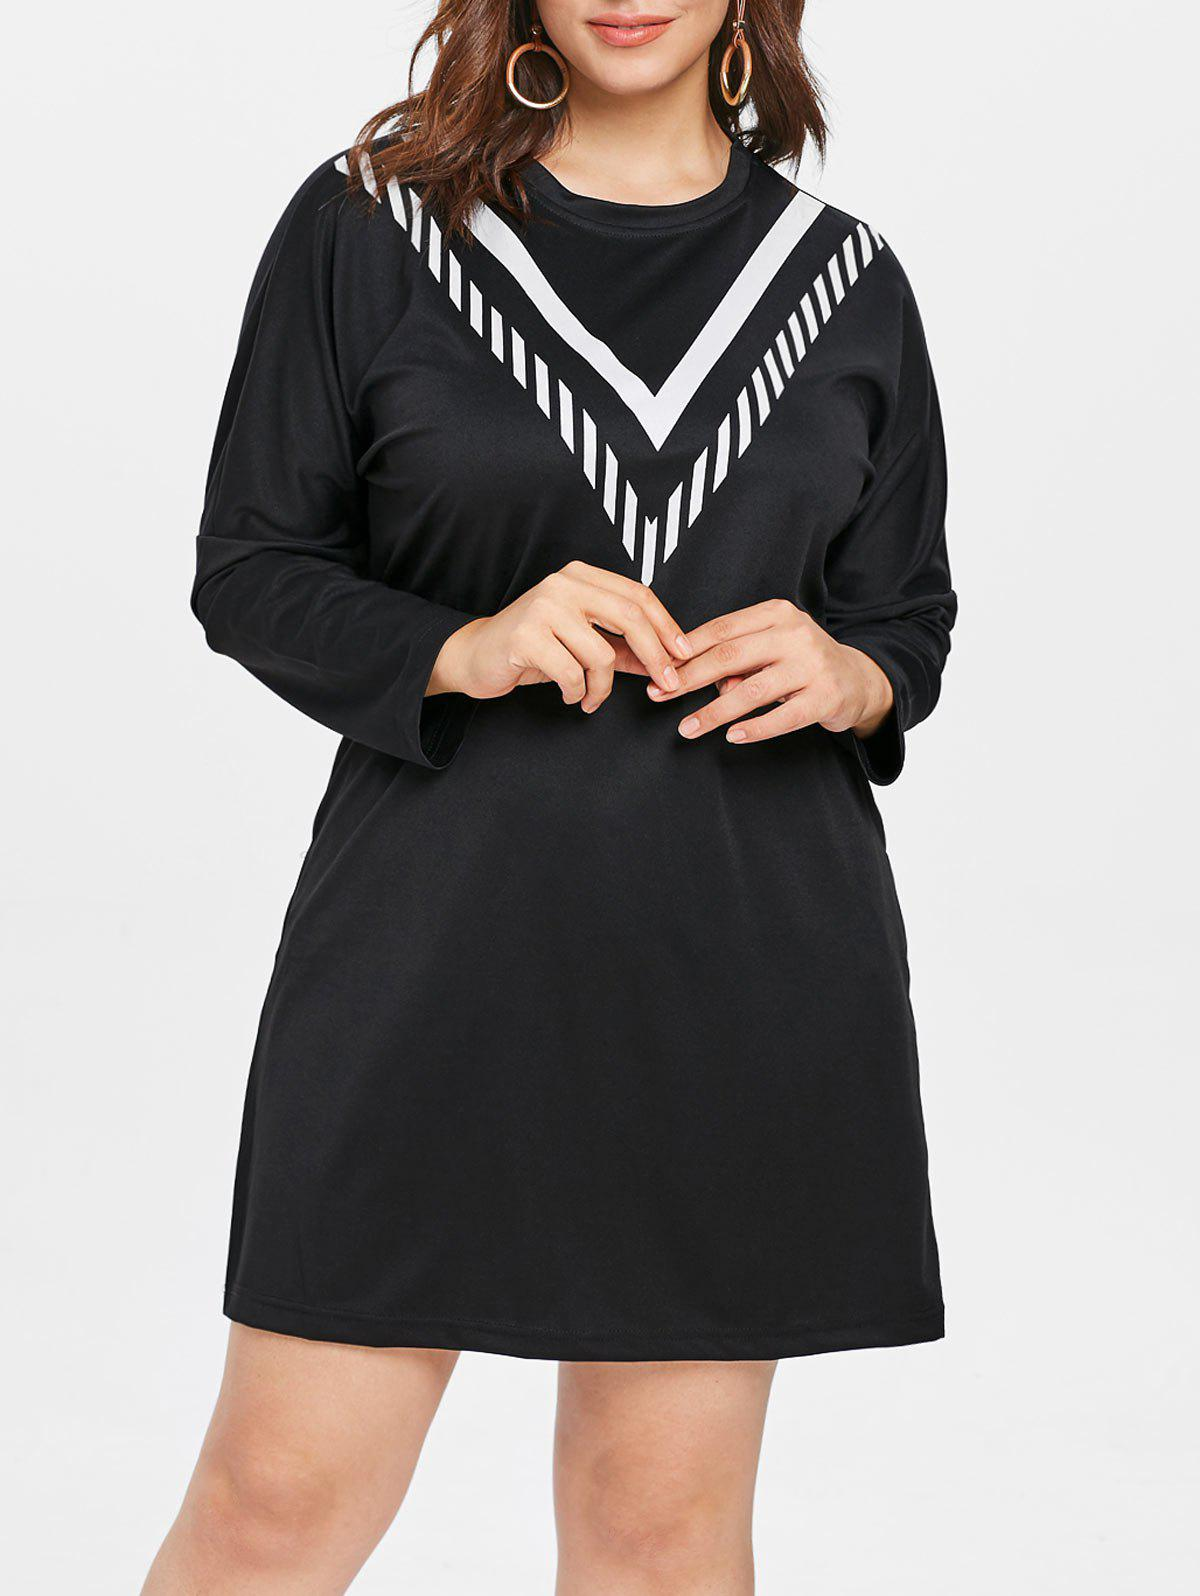 Chic Plus Size Casual Long Sleeve Dress